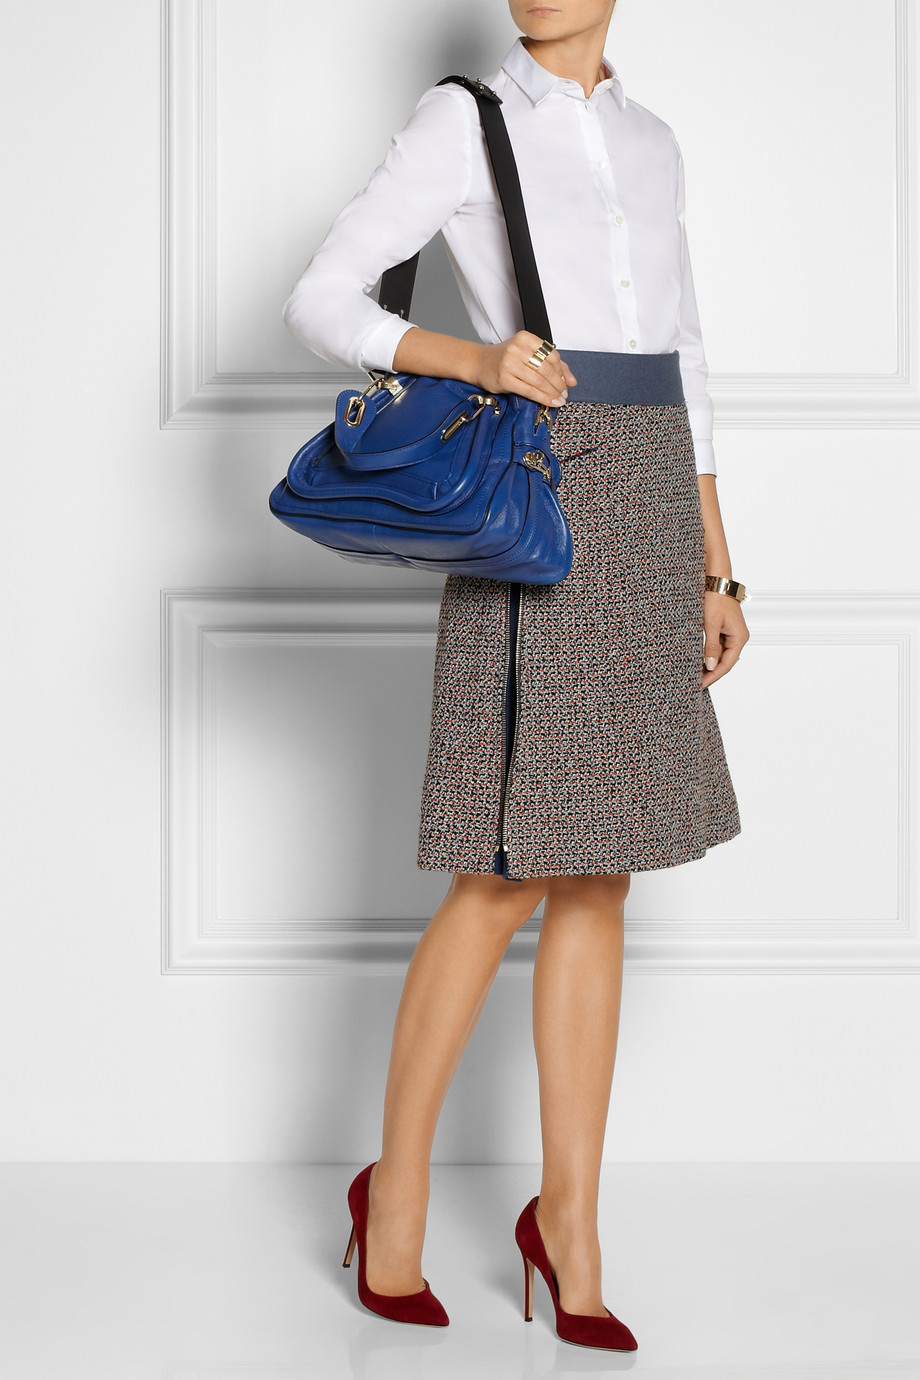 Chlo¨¦ The Paraty Military Medium Leather Shoulder Bag in Blue | Lyst